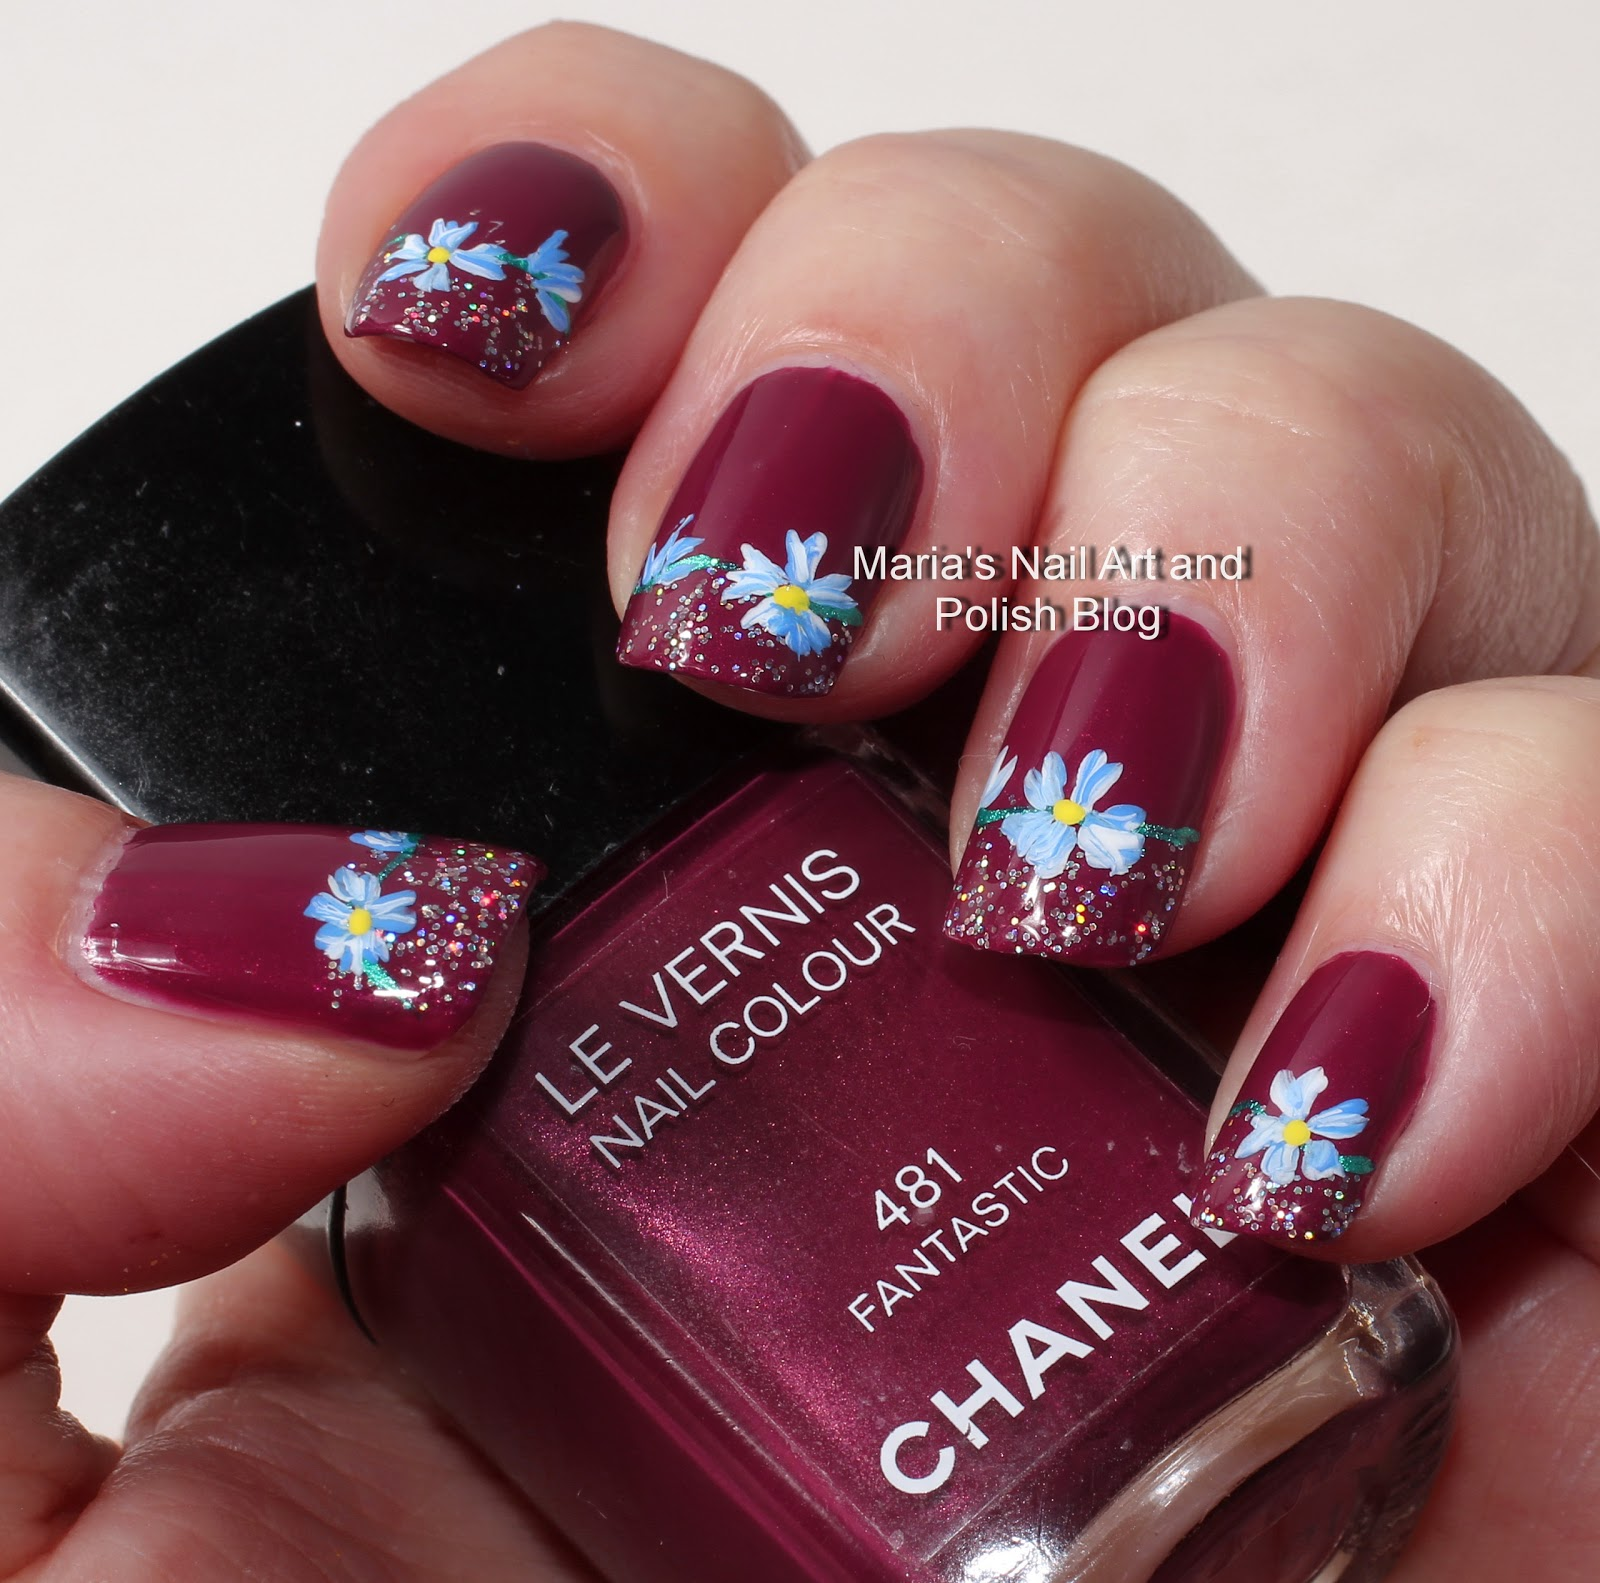 Marias Nail Art And Polish Blog Subtle Floral Nail Art On: Marias Nail Art And Polish Blog: Fantastic Confetti Flowers